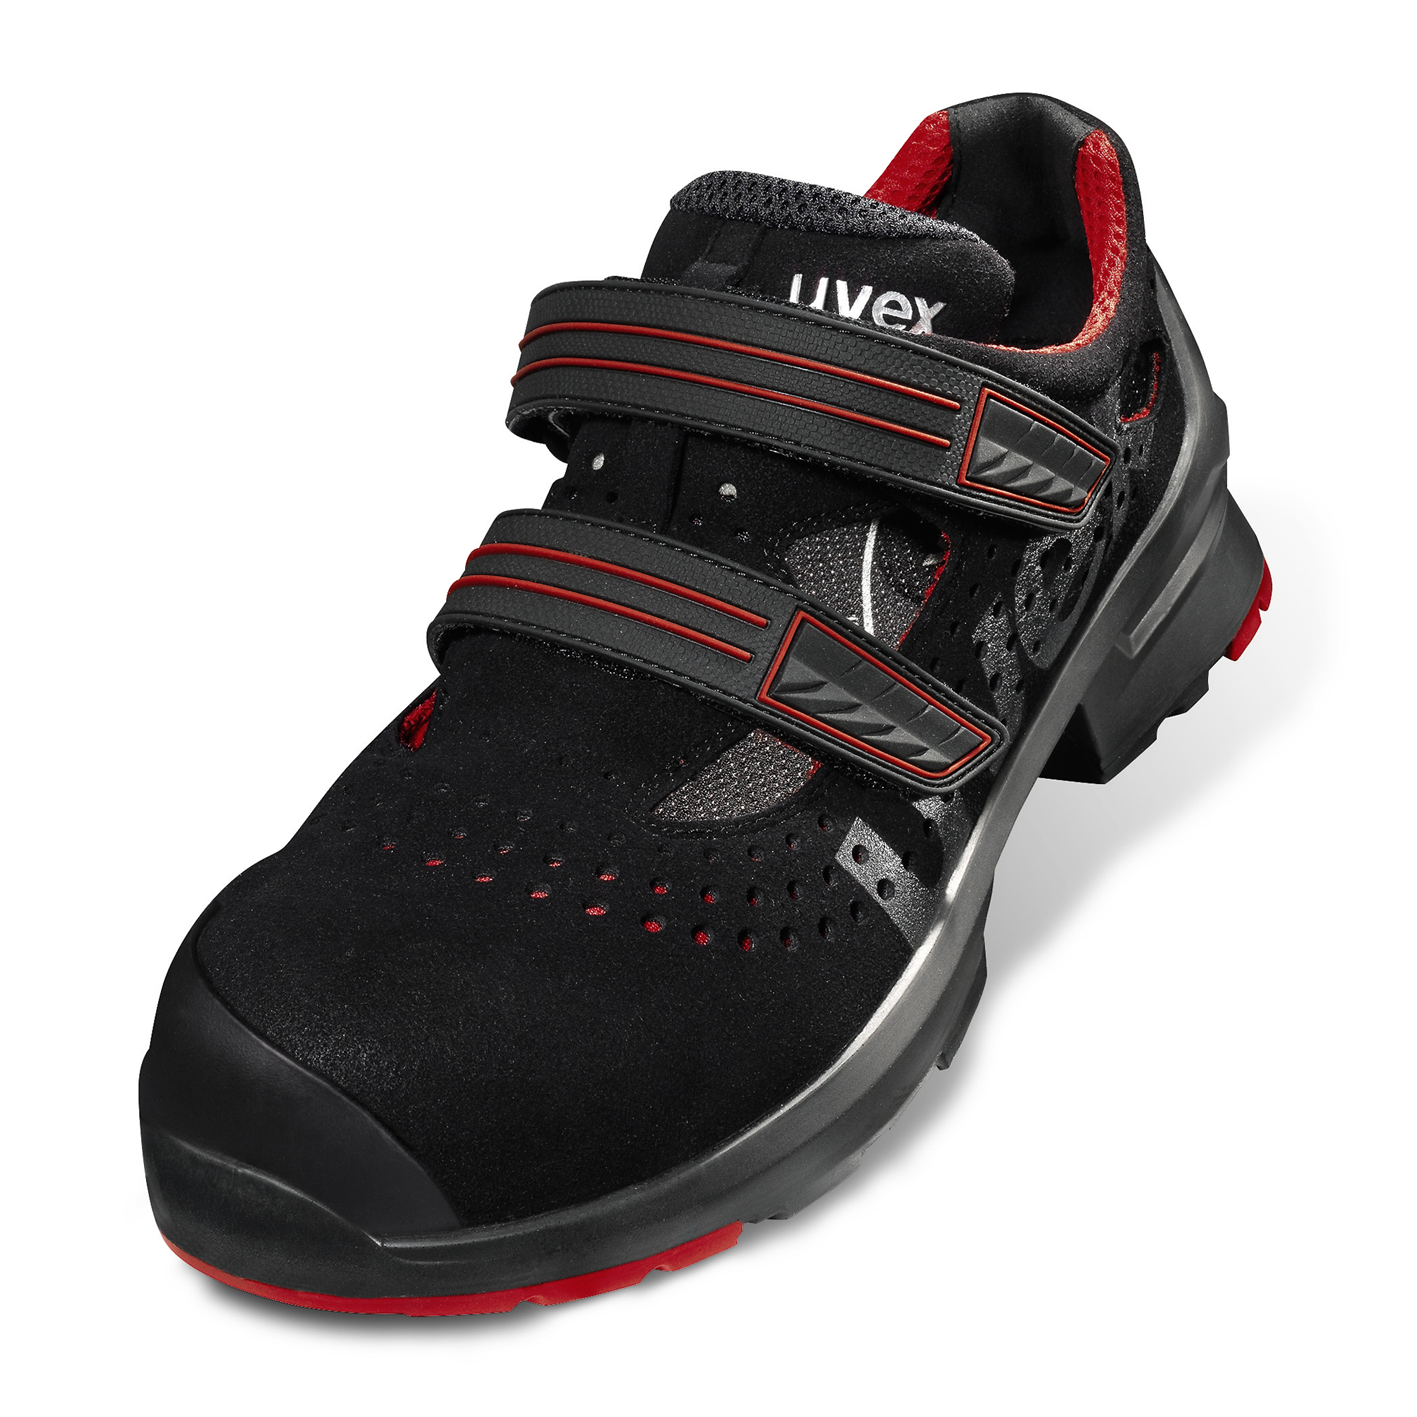 Image of   Sandal S1P Uvex1 8536 ESD